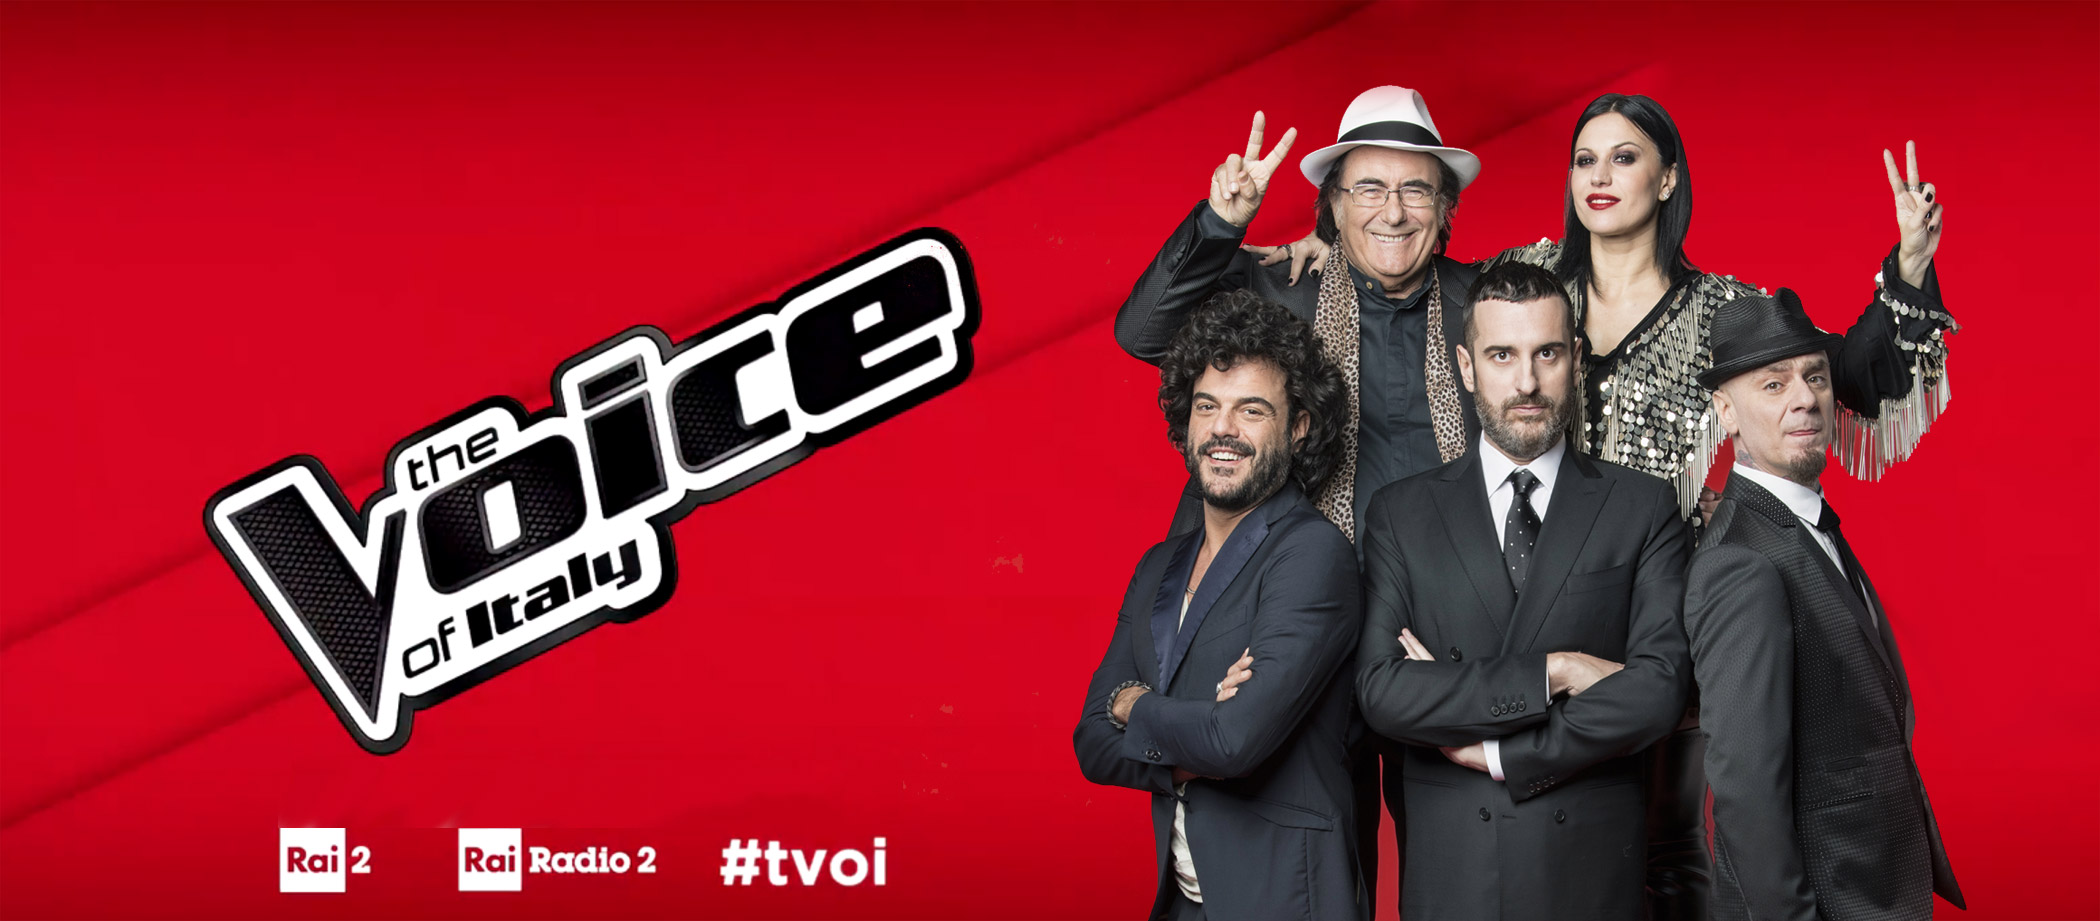 The Voice of Italy 2018, presentata in conferenza stampa la nuova edizione del talent show